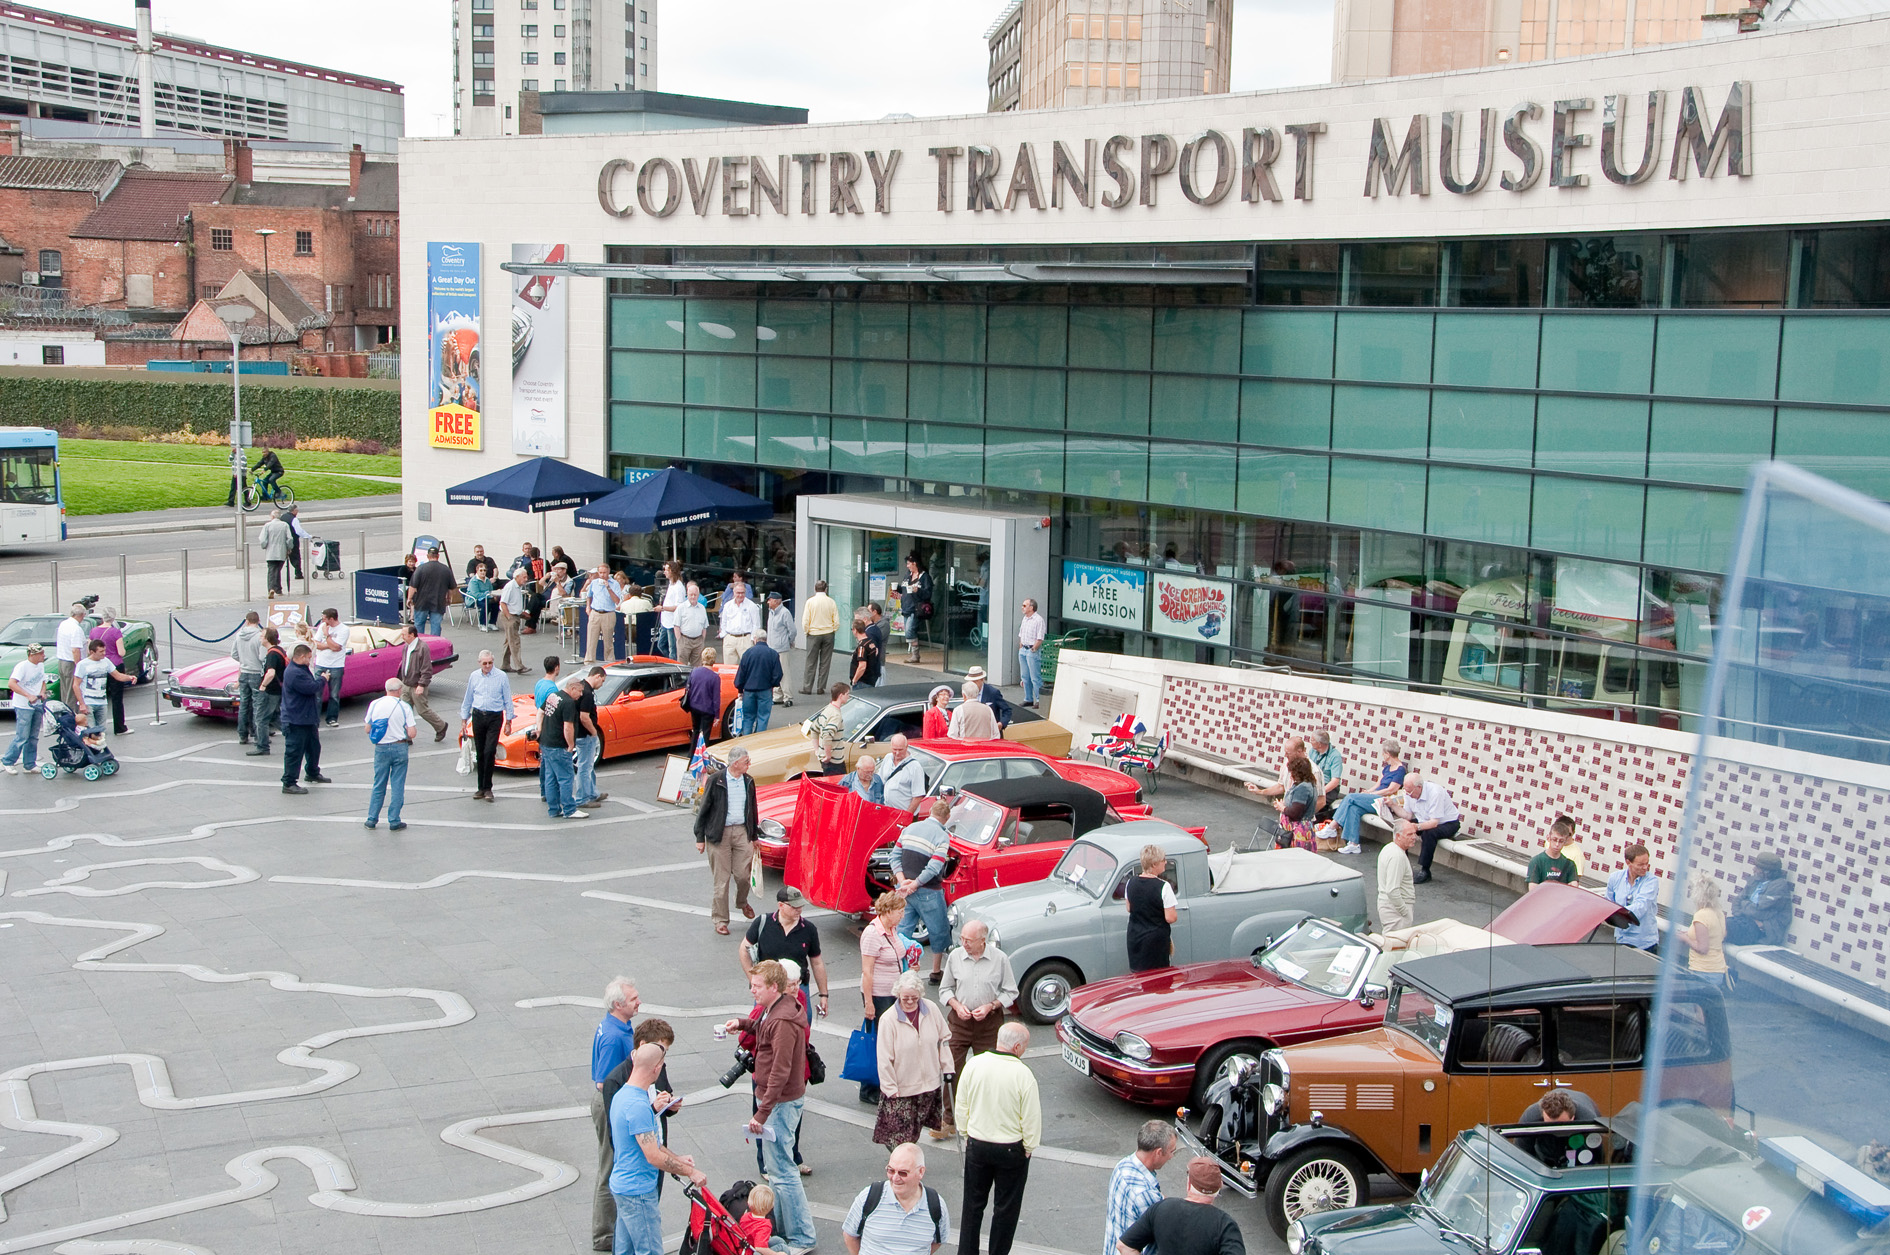 Congress Tour - Coventry Transport Museum